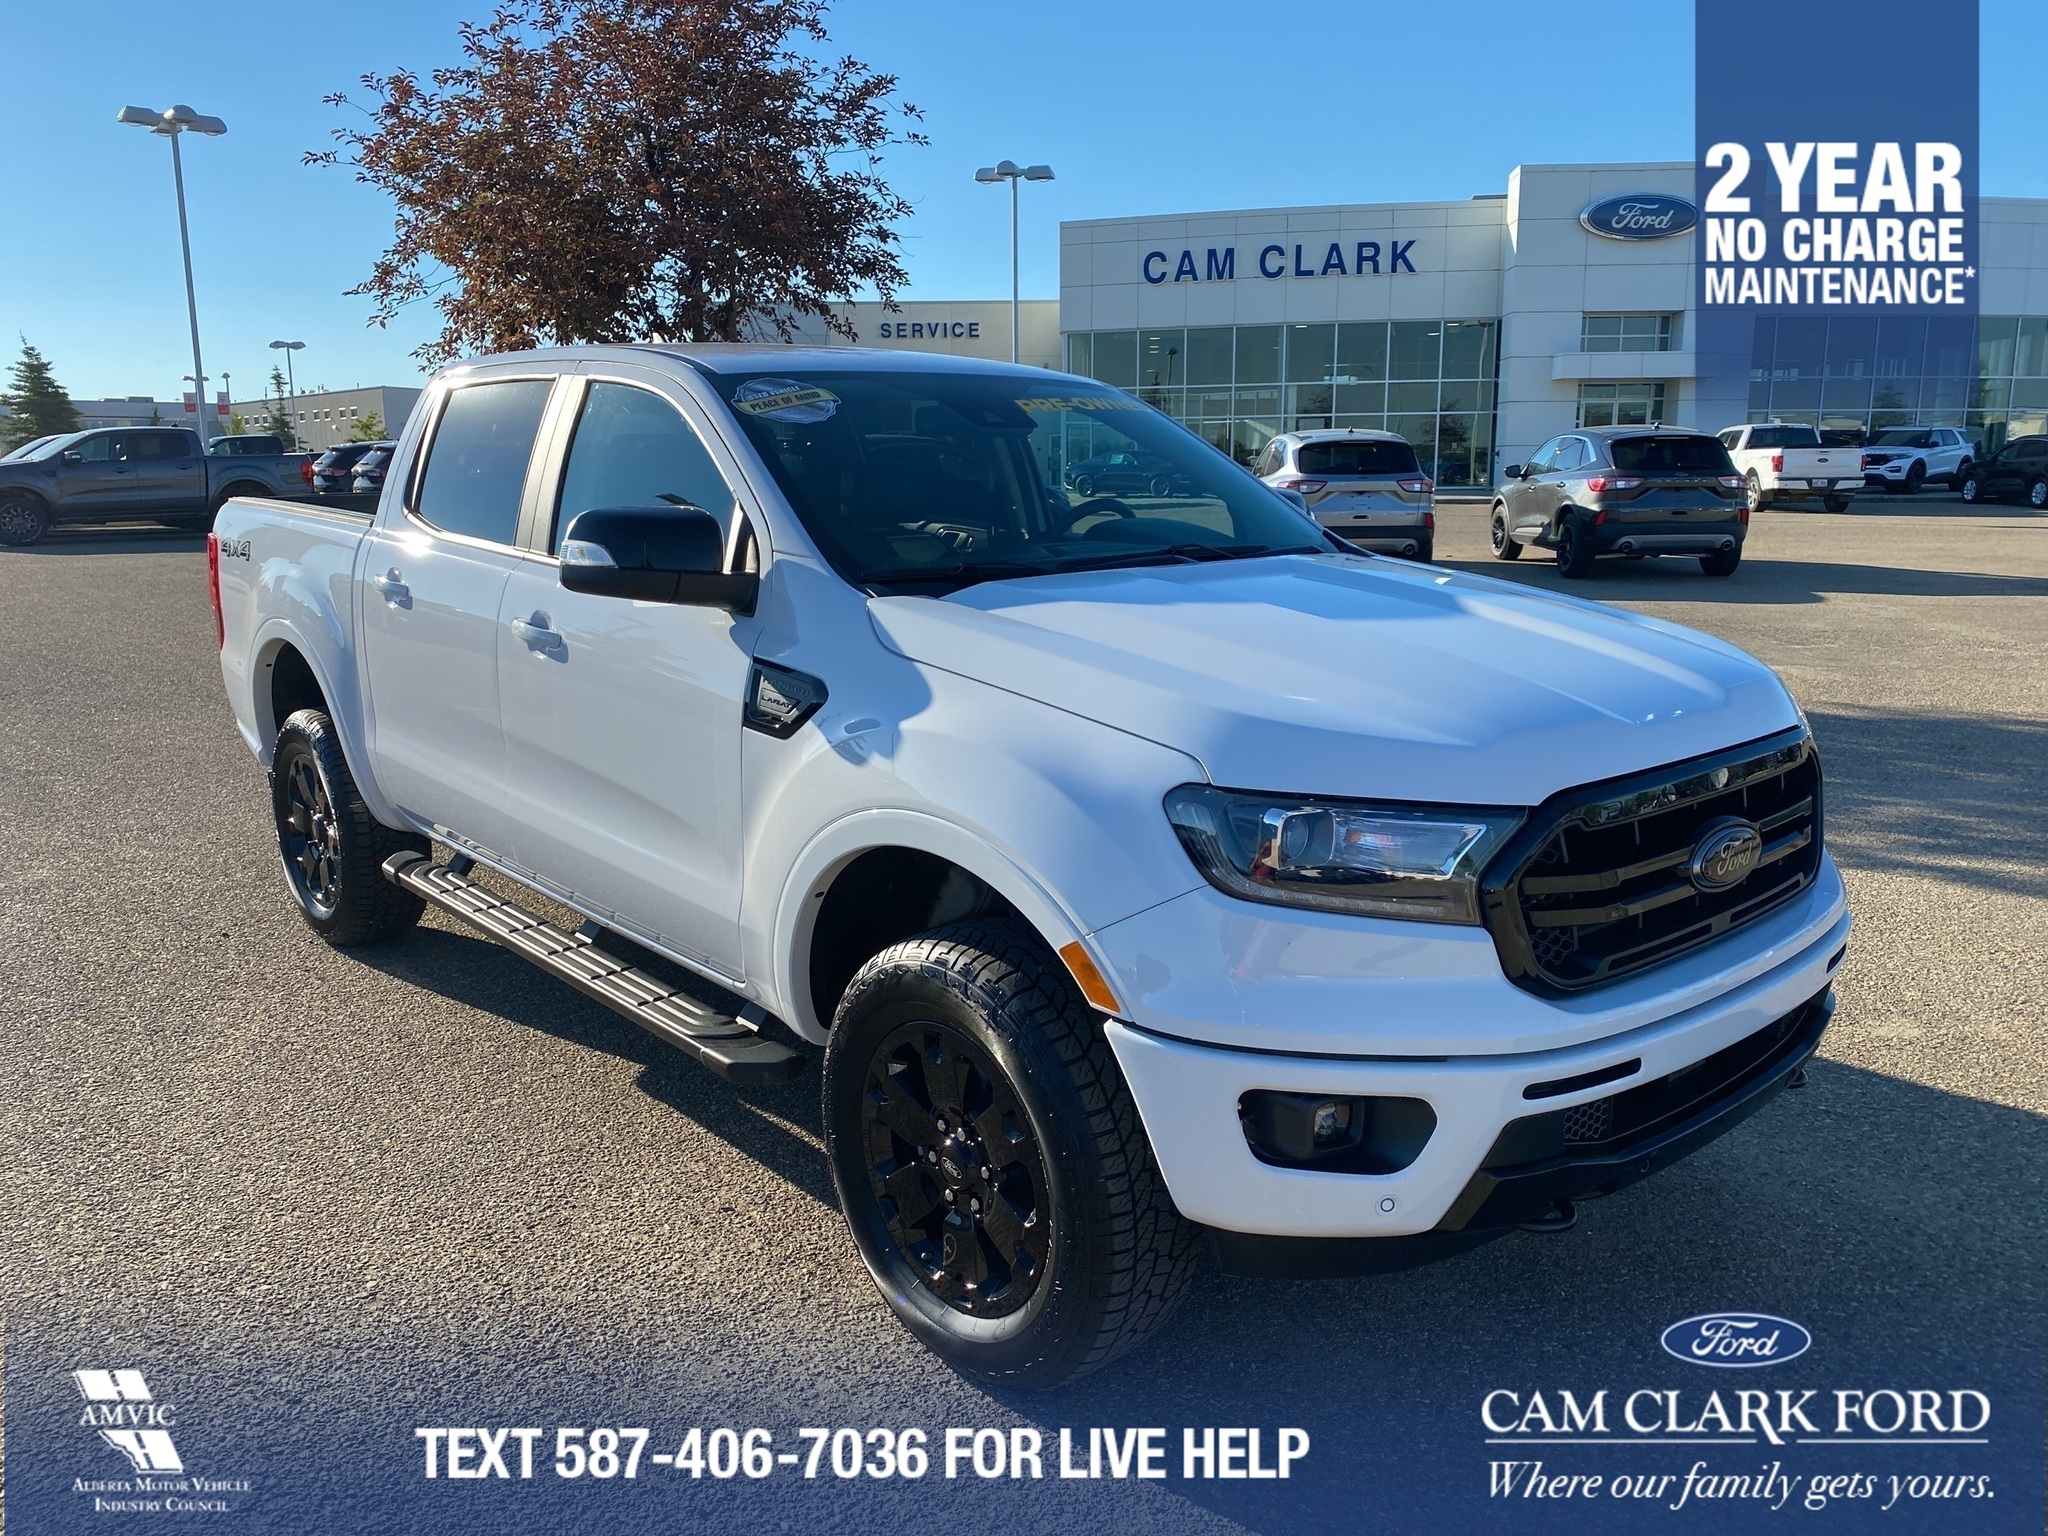 2021 Ford Expedition in Airdrie, AB | Cam Clark Ford